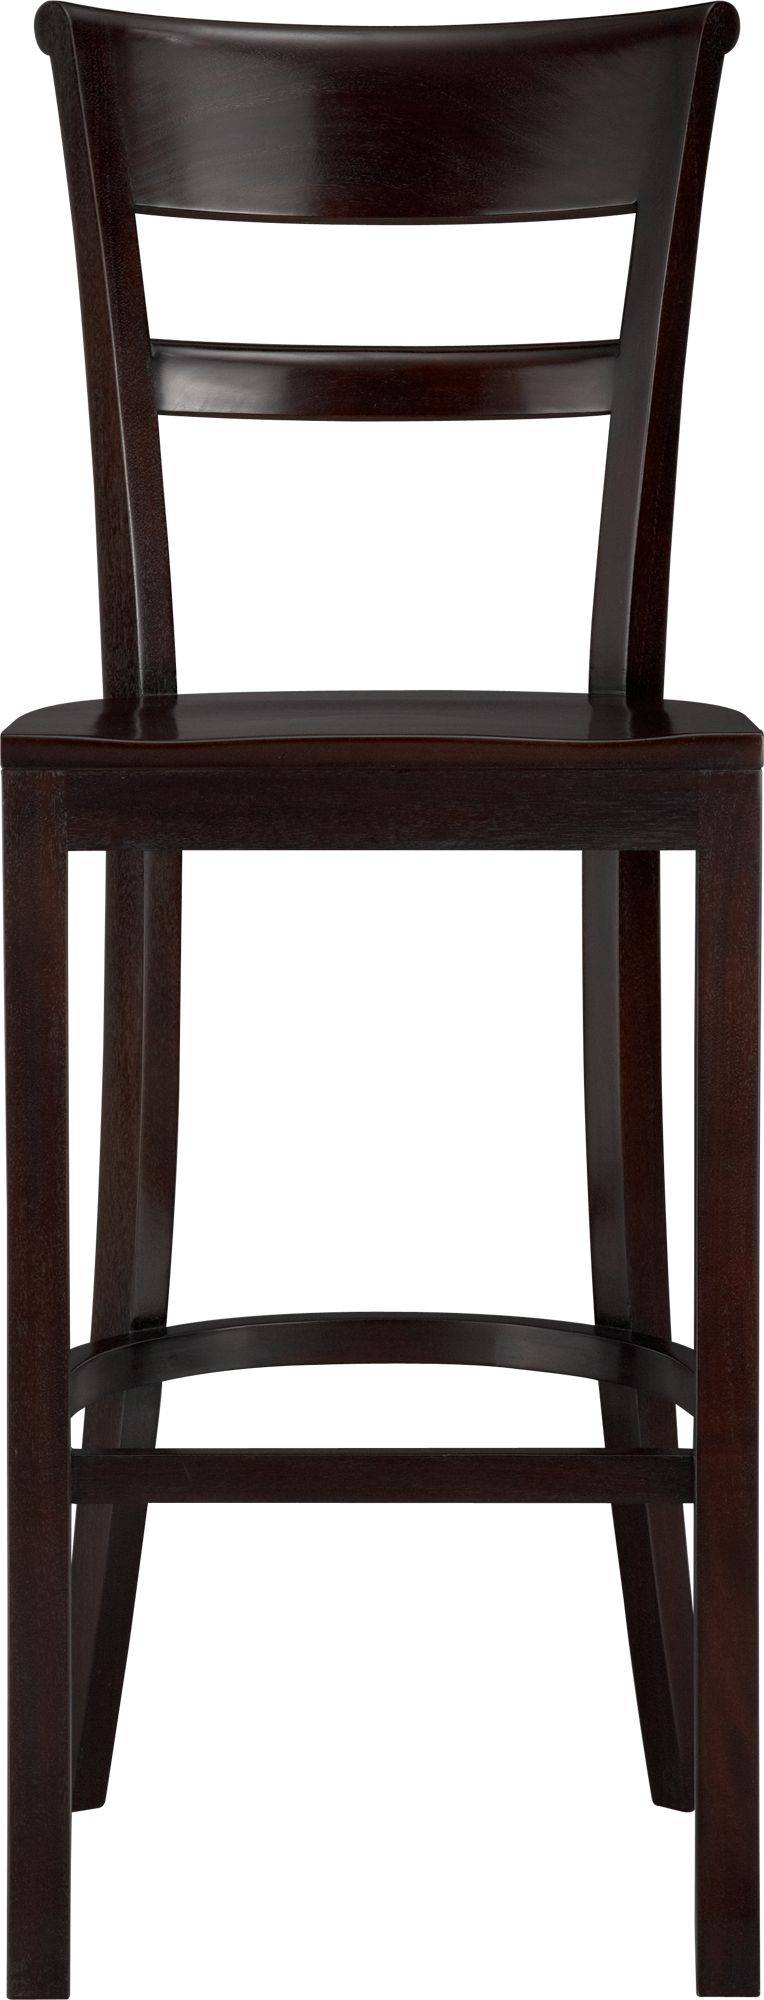 """Solid mahogany seating pulls up to bar with ease and elegance. Barstool has graceful rolled back and comfortable contours to the seat. A soft-sheen lacquer adds a finishing detail.<br /><br /><NEWTAG/><ul><li>FSC-certified solid mahogany</li><li>Clear protective lacquer finish</li><li>30""""H seat sized for bars</li><li>Made in Indonesia</li></ul>"""